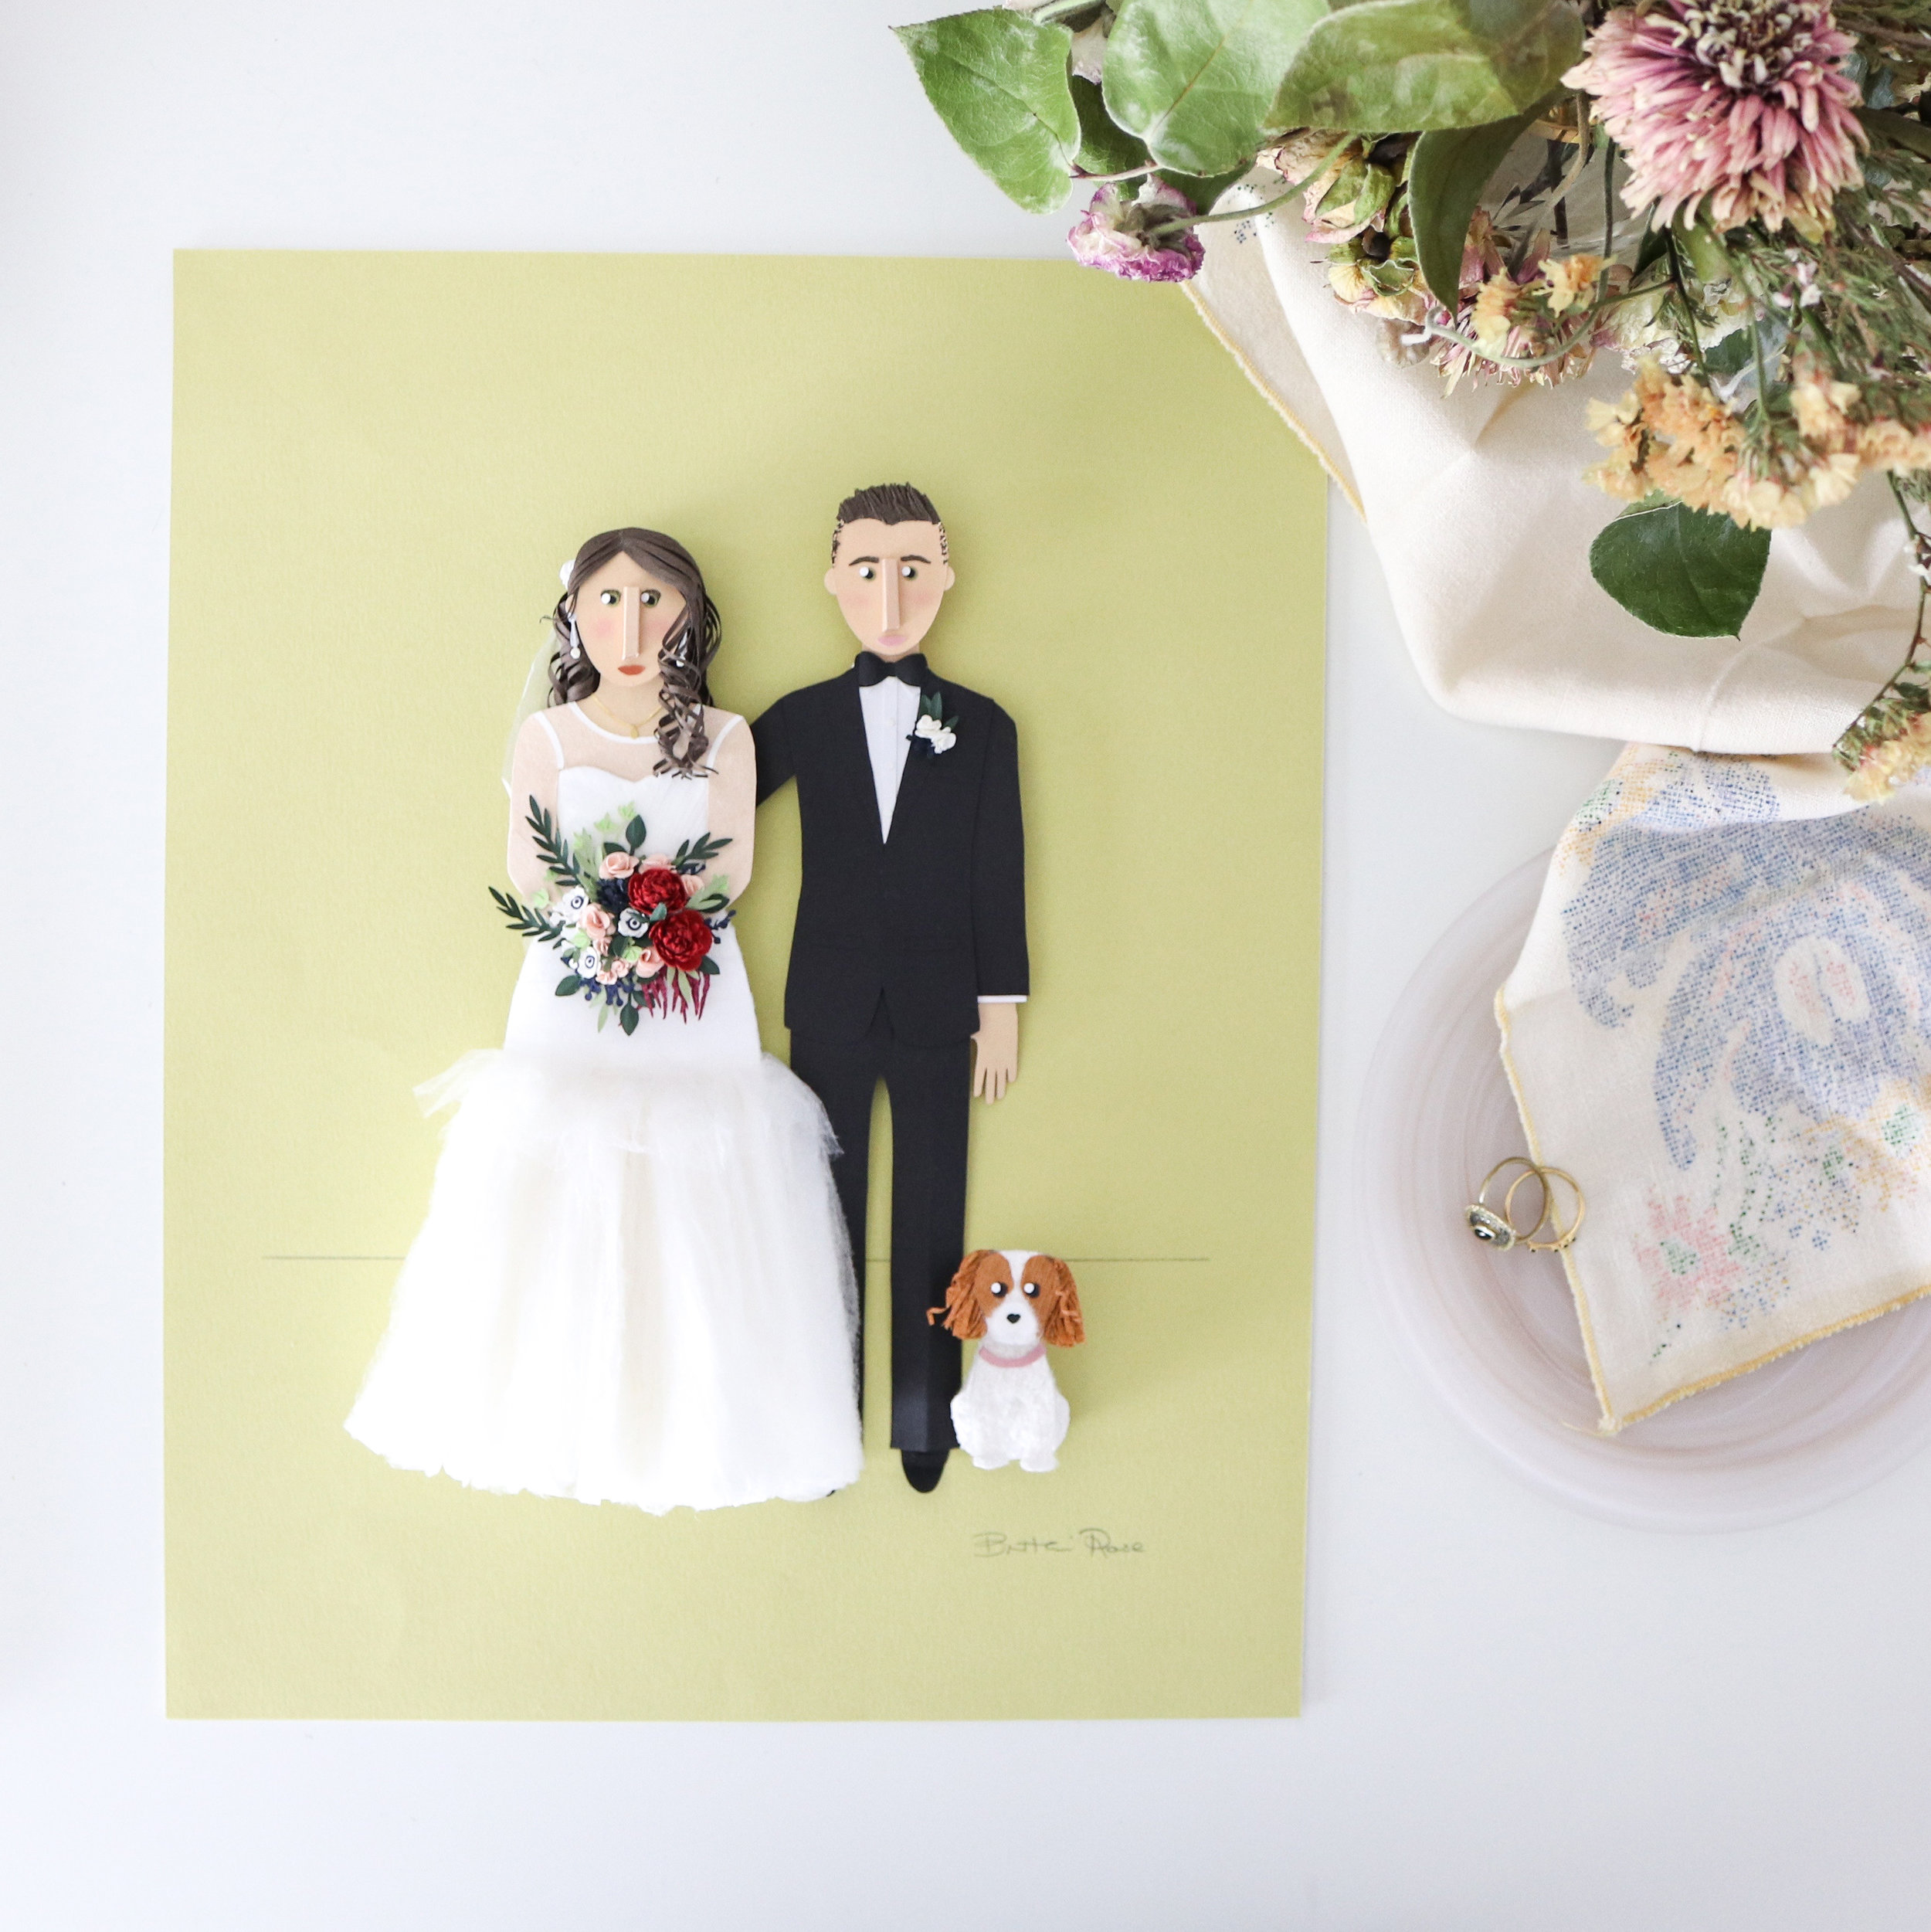 Wedding Gift for Her on your one year anniversary by paper artist Brittani Rose.